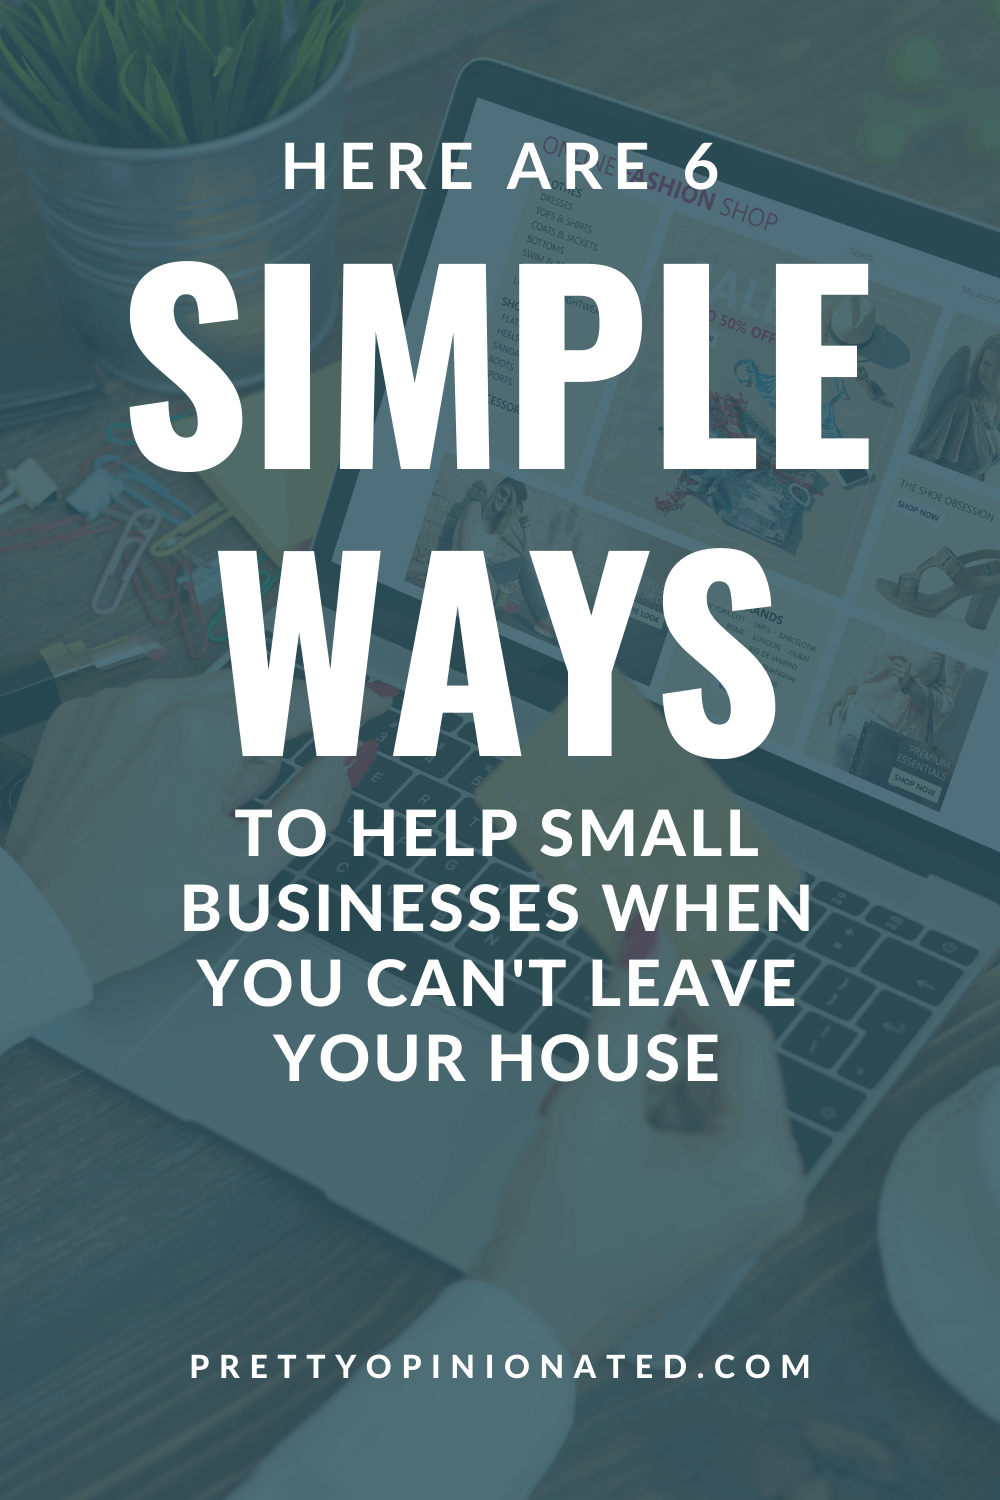 Small businesses are taking a huge hit right now, costing families their livelihood. If you want to help them survive, read on for 6 things you can do right from your own home.